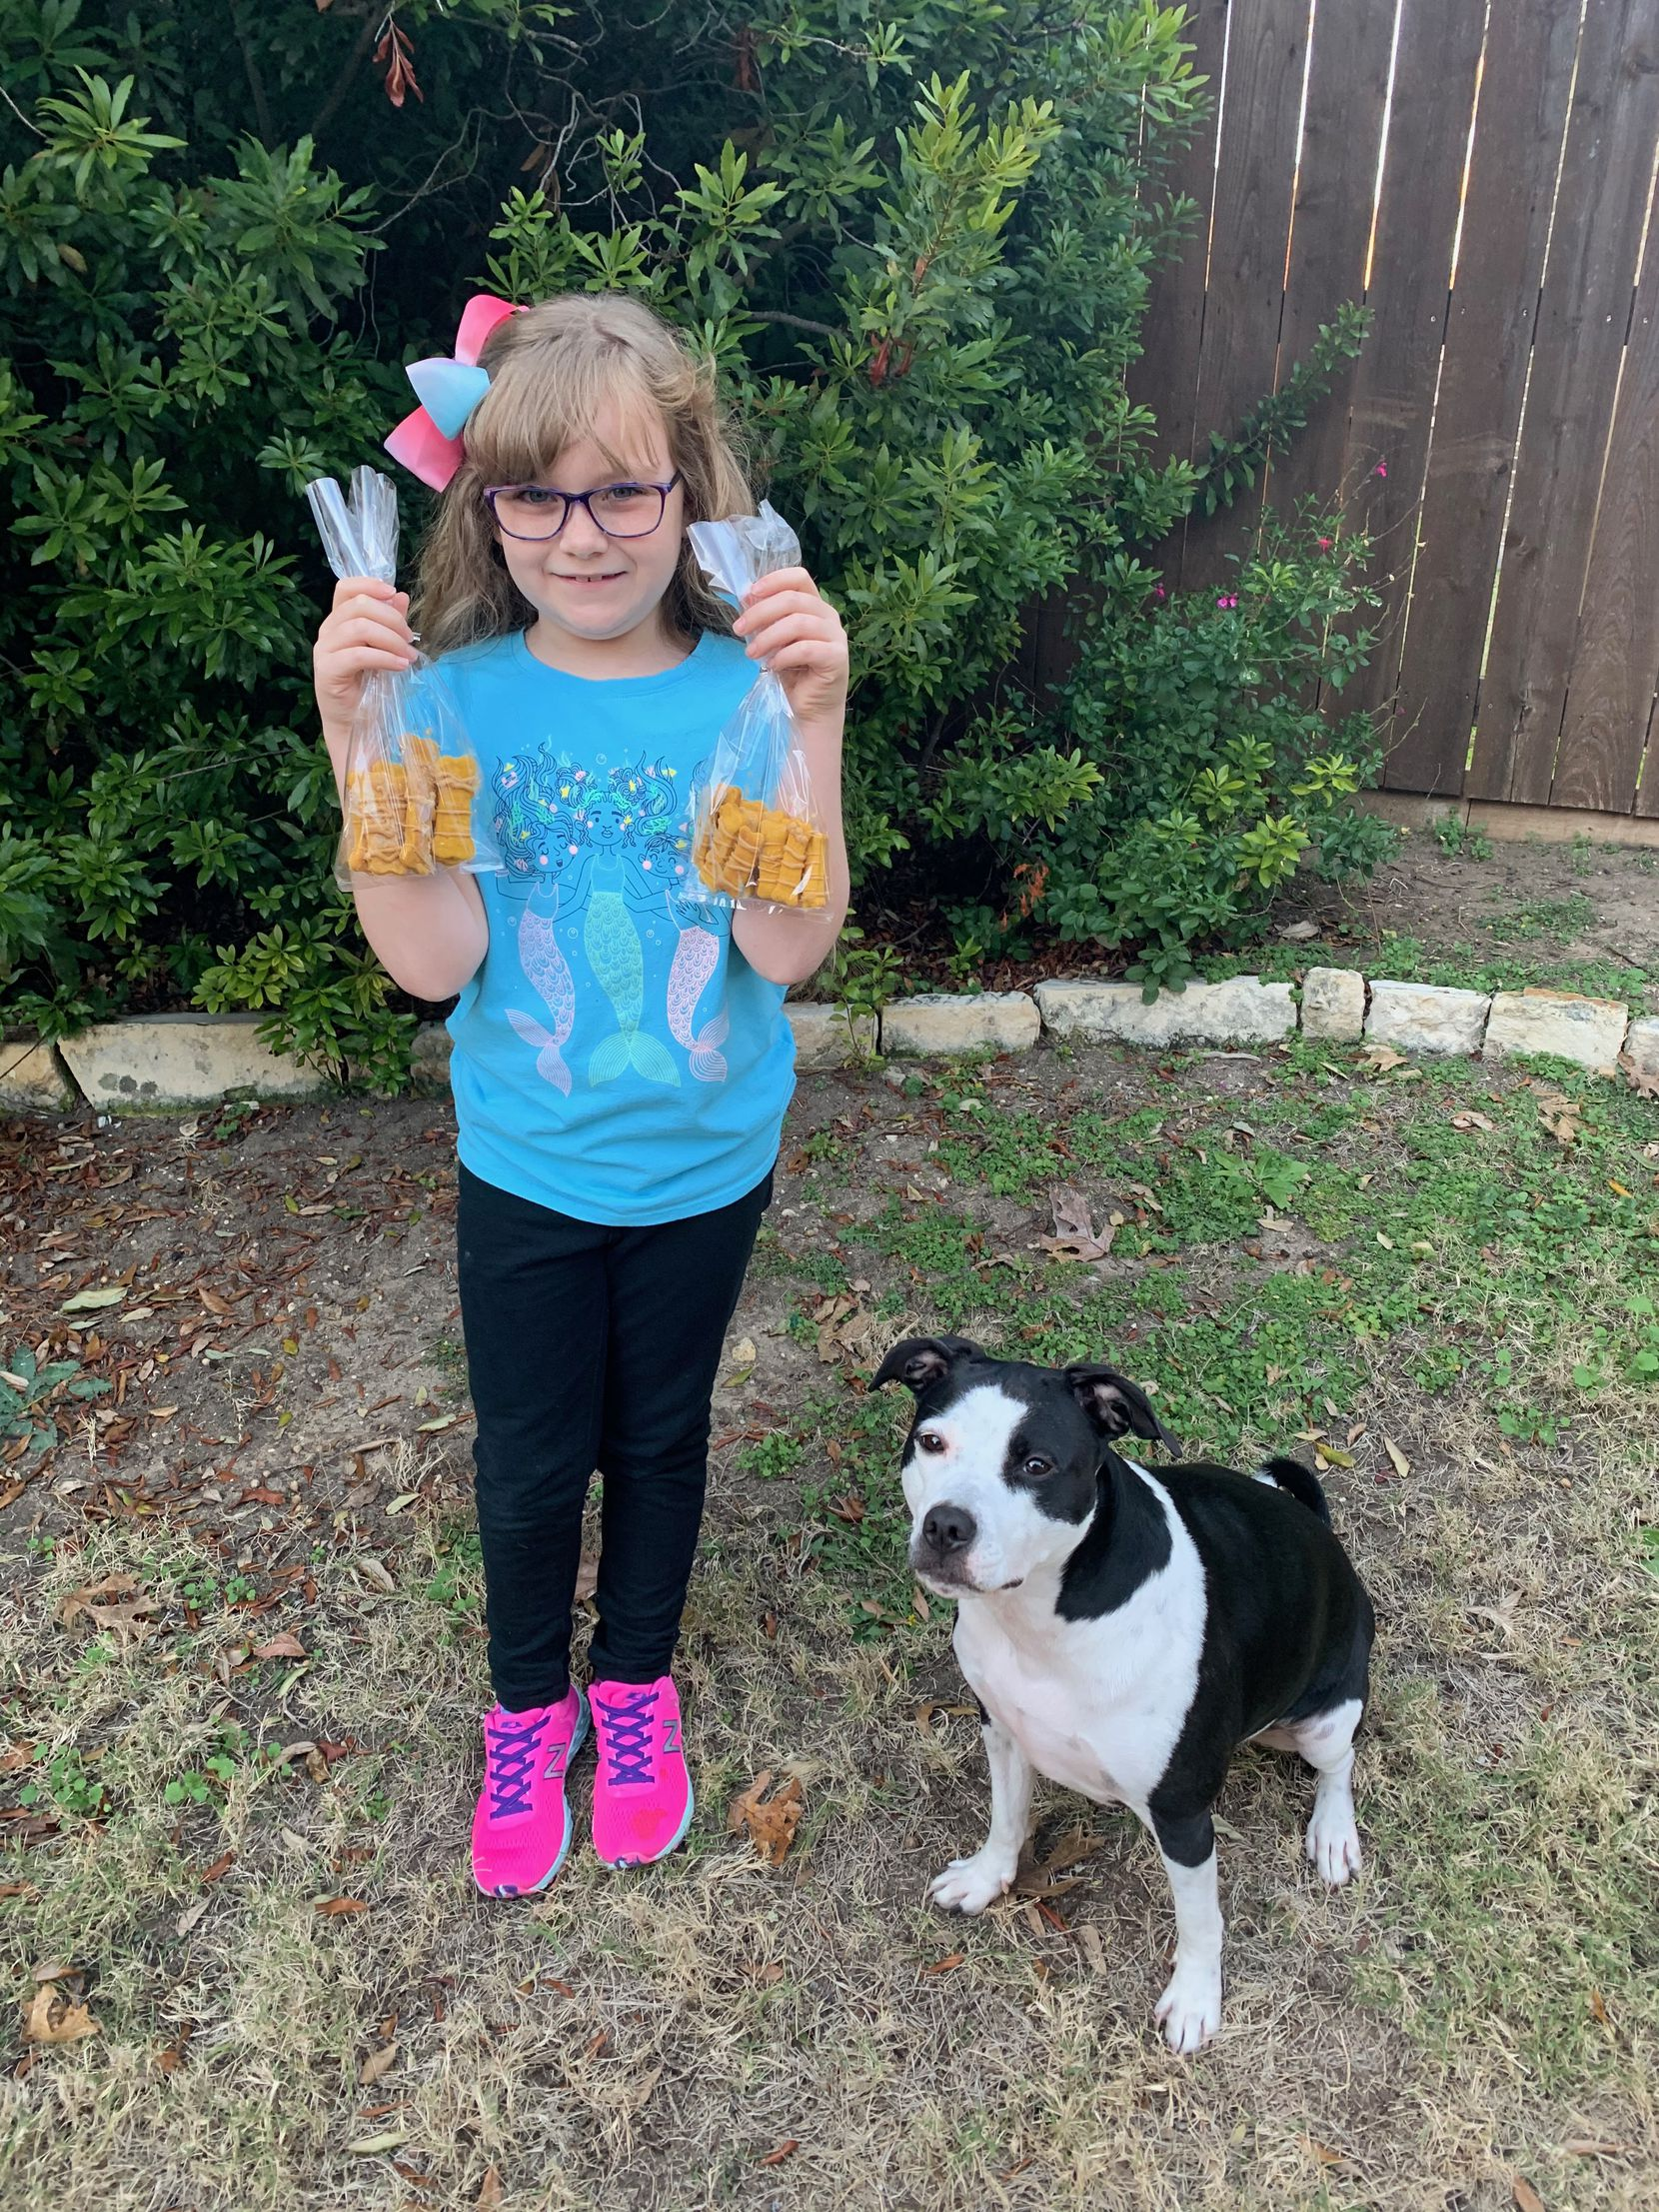 Lily Romito, 8, and her 3-year-old Labrador mix Maggie with fresh homemade dog treats from Maggie's Barkery.